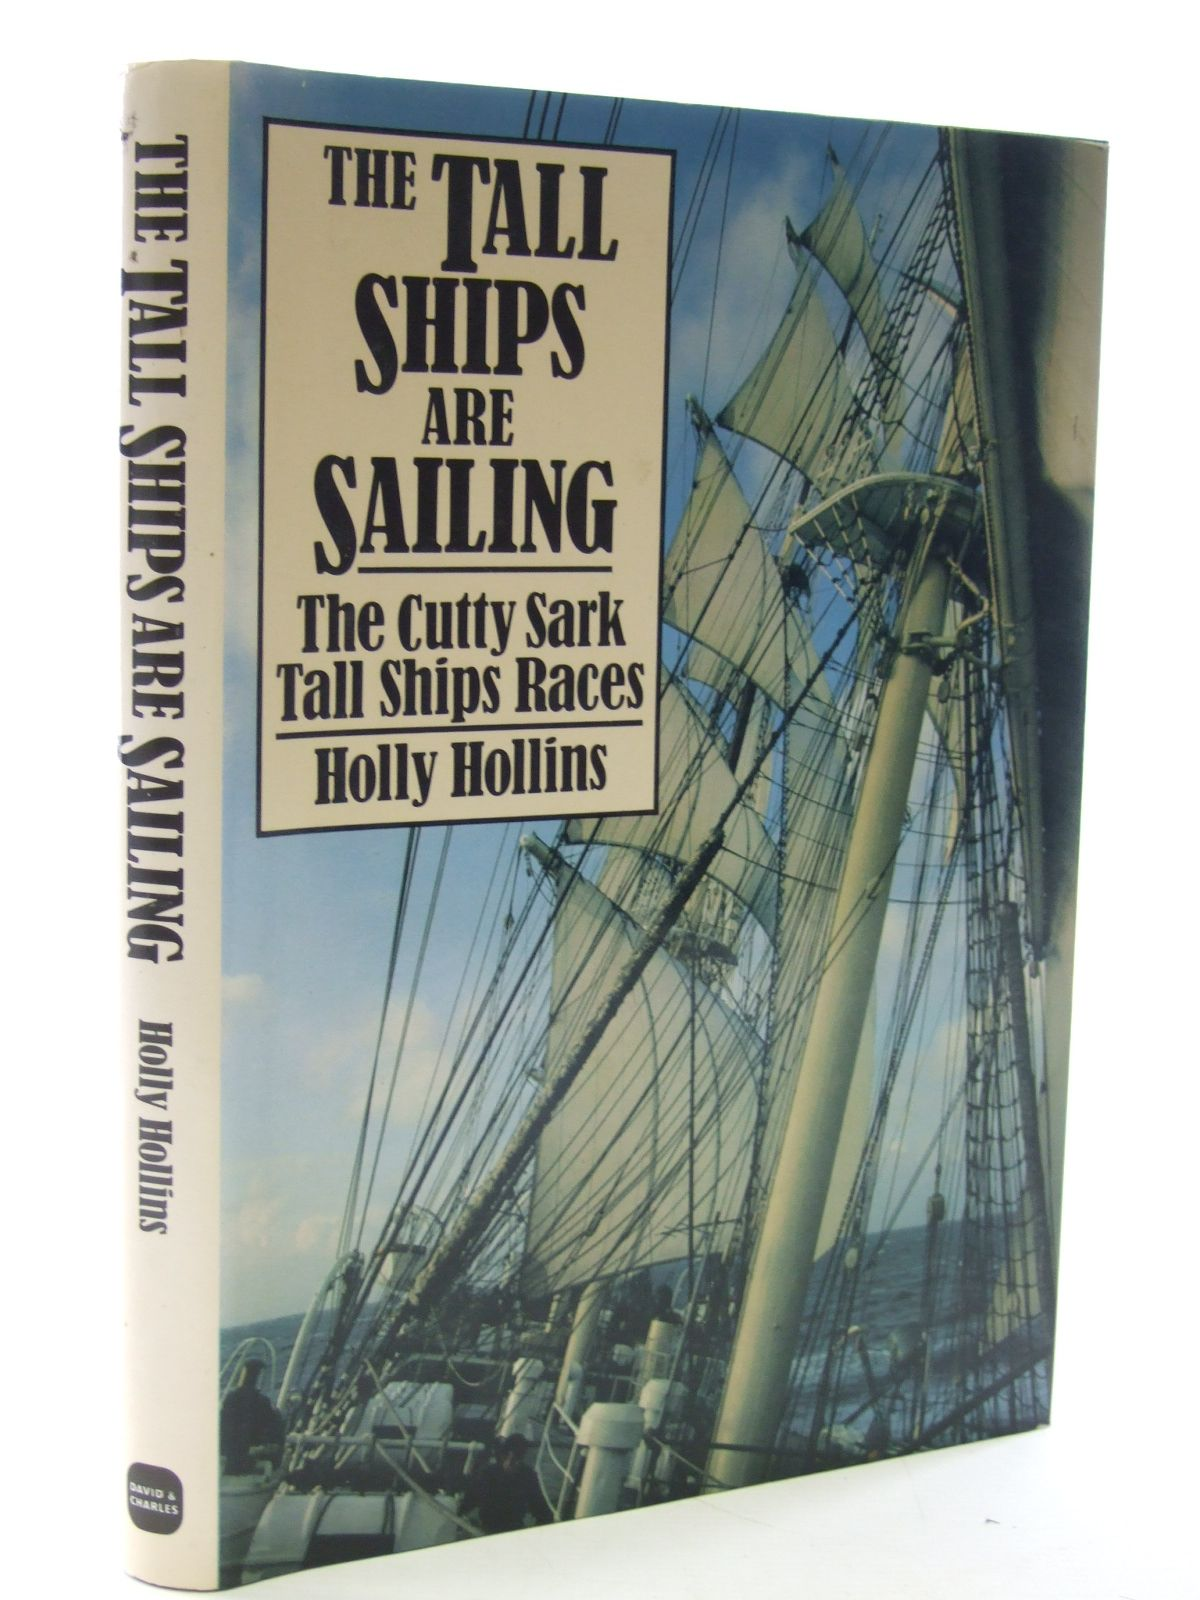 Photo of THE TALL SHIPS ARE SAILING written by Hollins, Holly published by David & Charles (STOCK CODE: 1603279)  for sale by Stella & Rose's Books